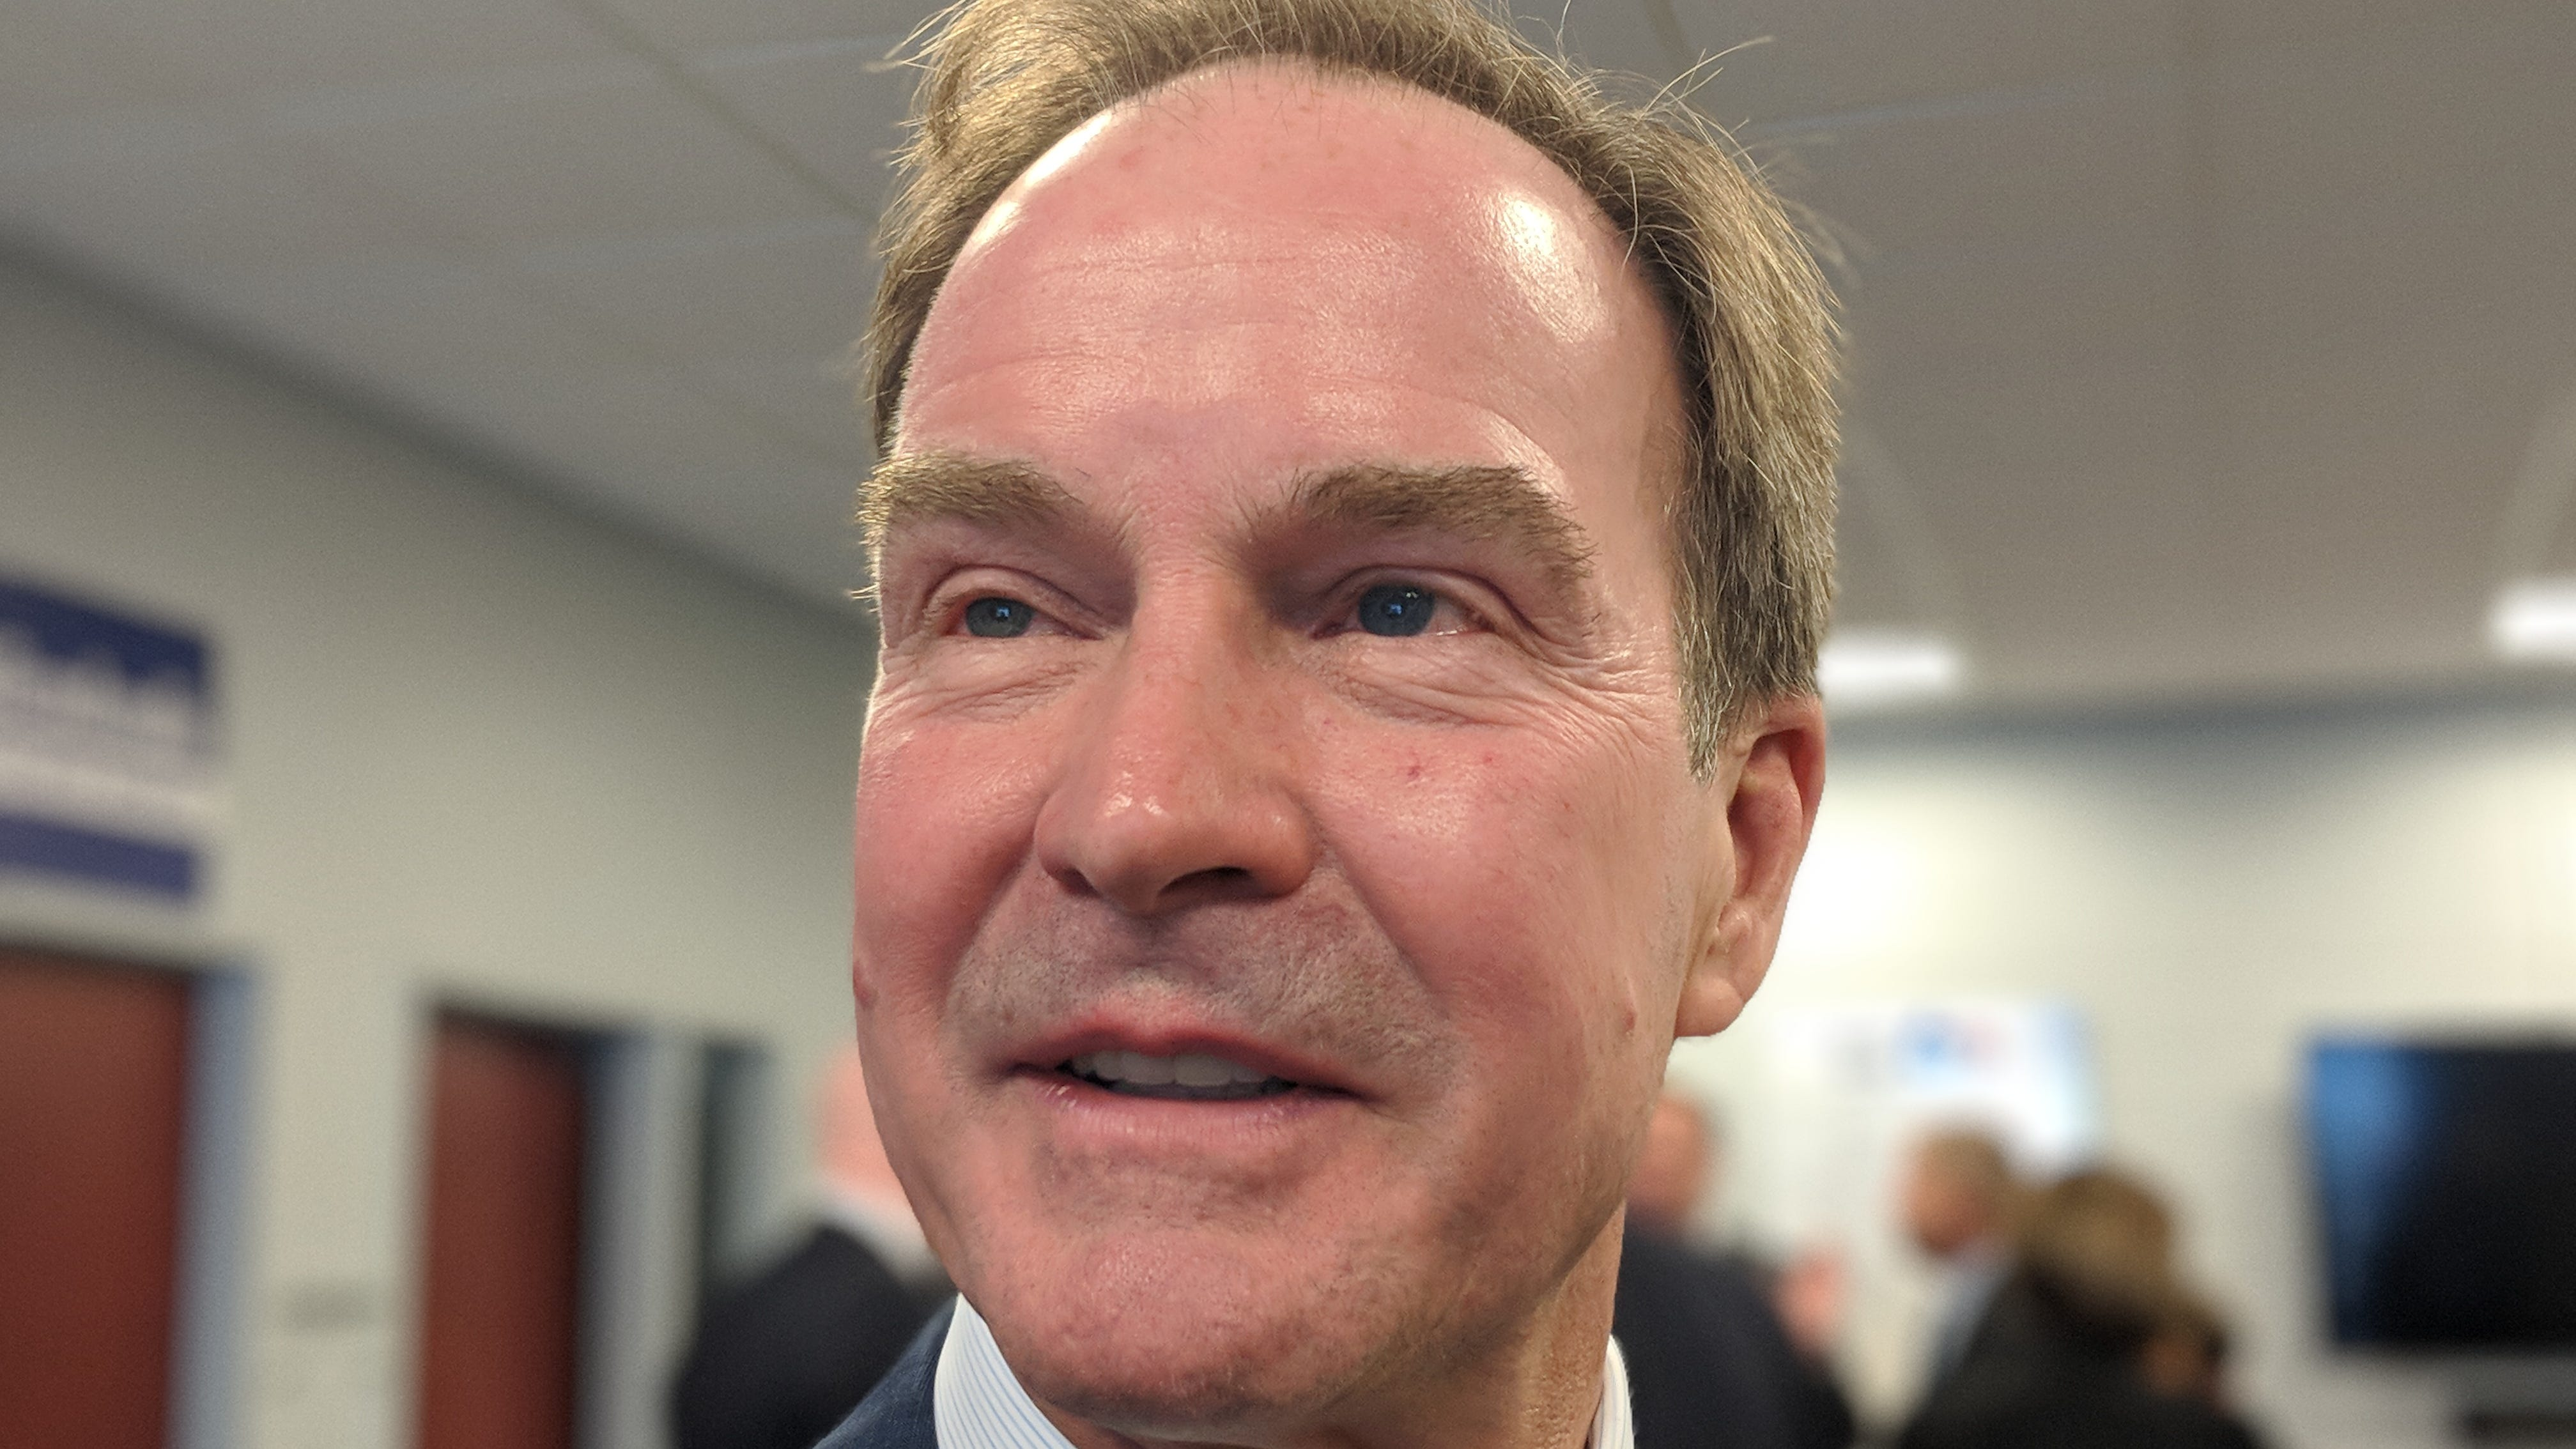 Republican Bill Schuette said  comments from a prominent victim show Democrat Gretchen Whitmer is lying about the prosecution of Larry Nassar cases